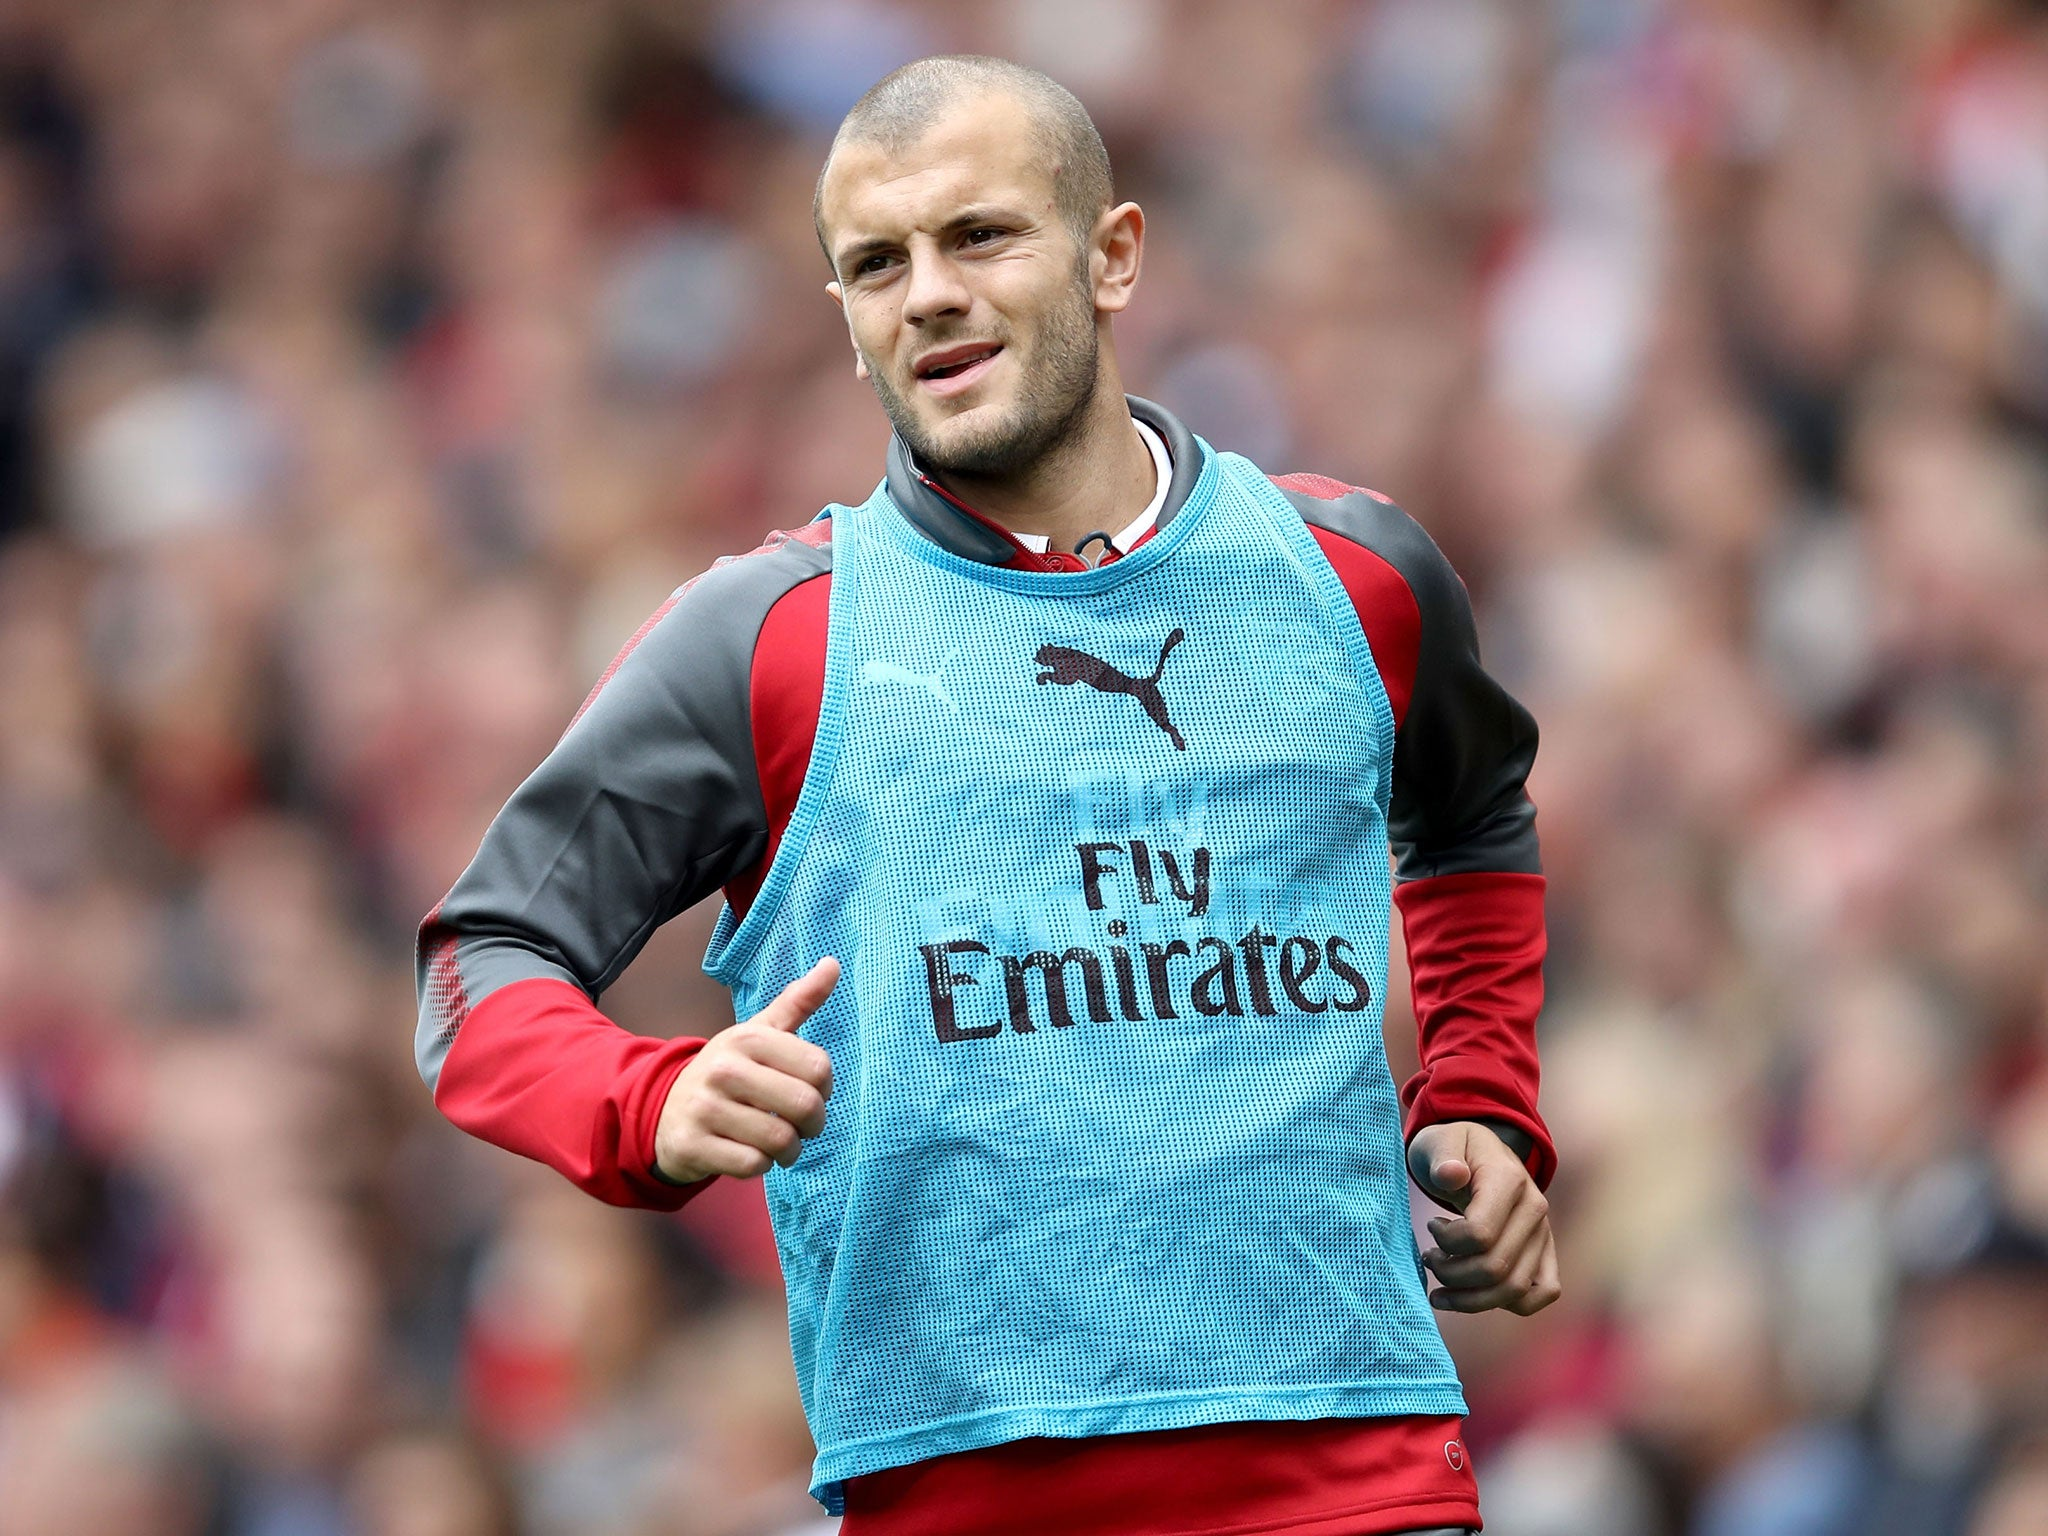 Arsenal midfielder Jack Wilshere determined to win first-team recalls for club and country   The Independentindependent_brand_ident_LOGOUntitled